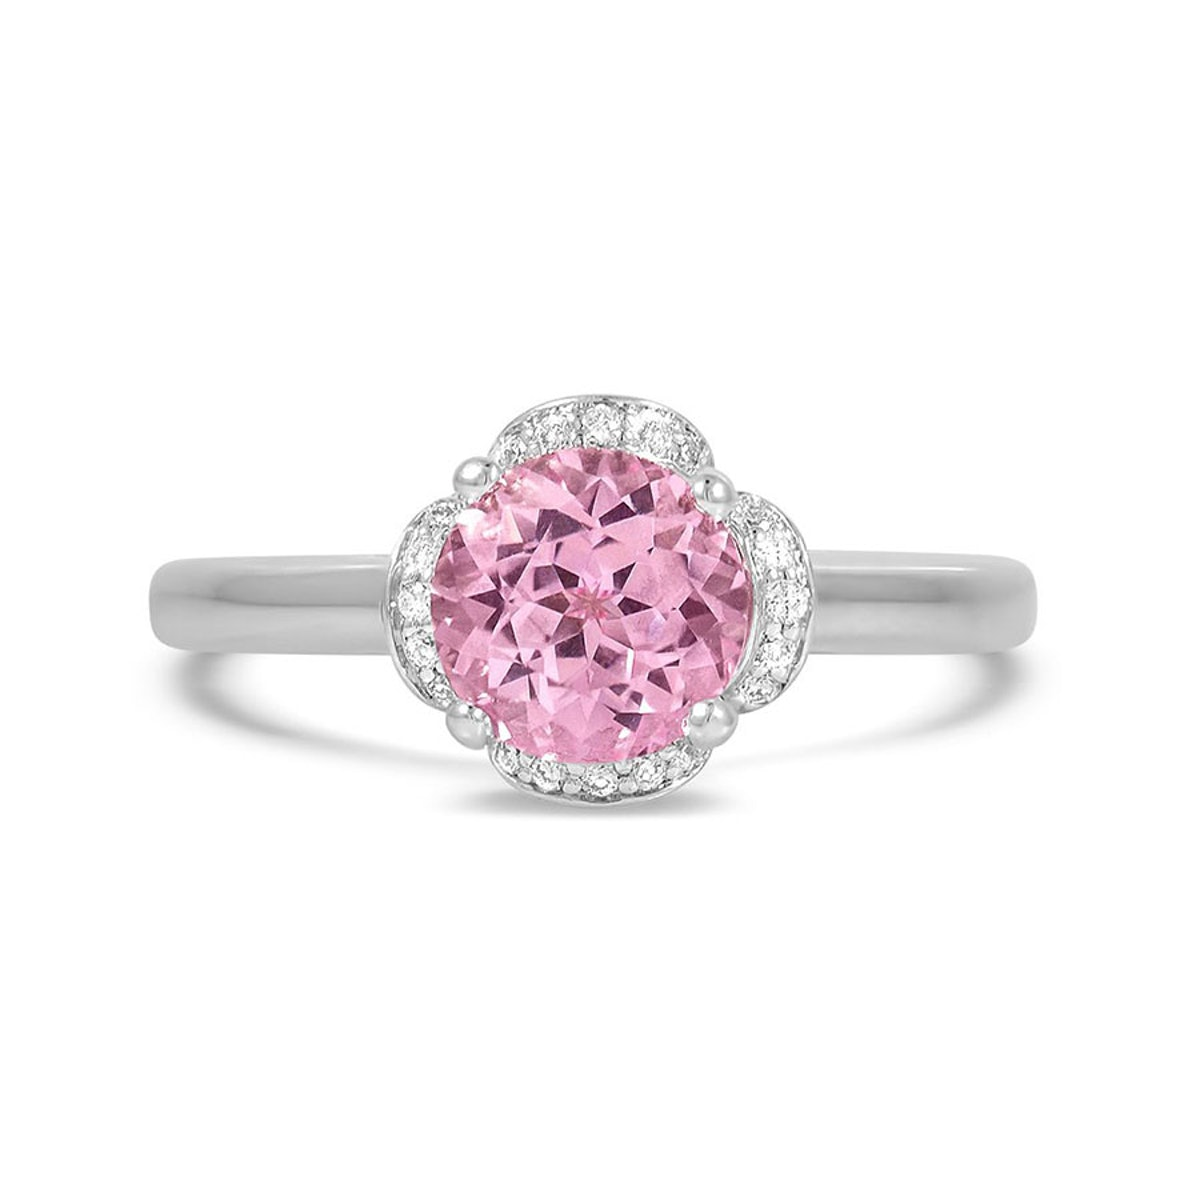 The Russo Ring